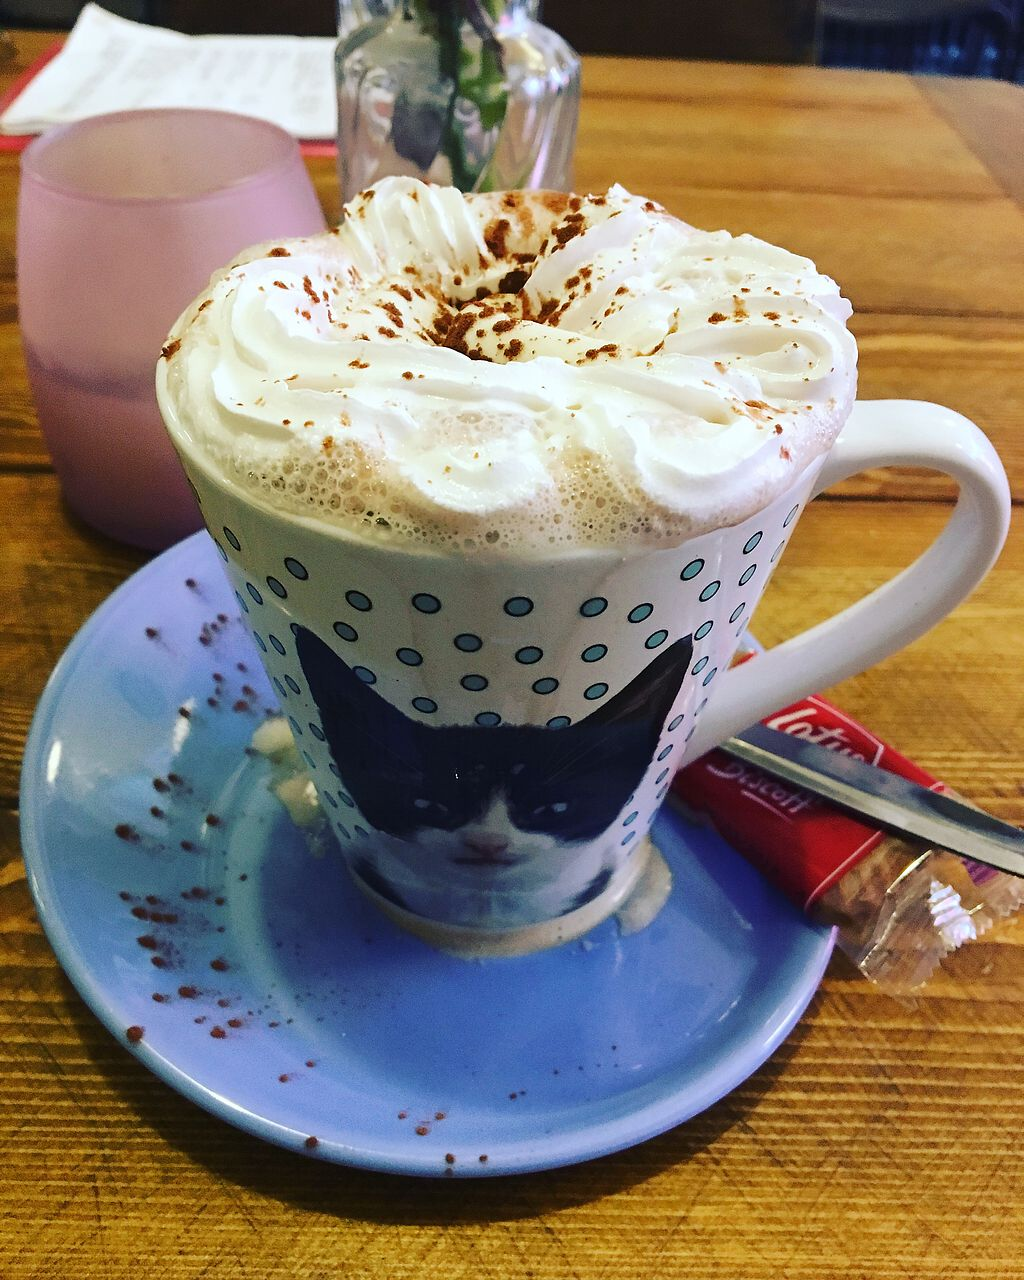 """Photo of Humblest of Pleasures  by <a href=""""/members/profile/Aj88"""">Aj88</a> <br/>Hot chocolate! <br/> November 16, 2017  - <a href='/contact/abuse/image/96089/326188'>Report</a>"""